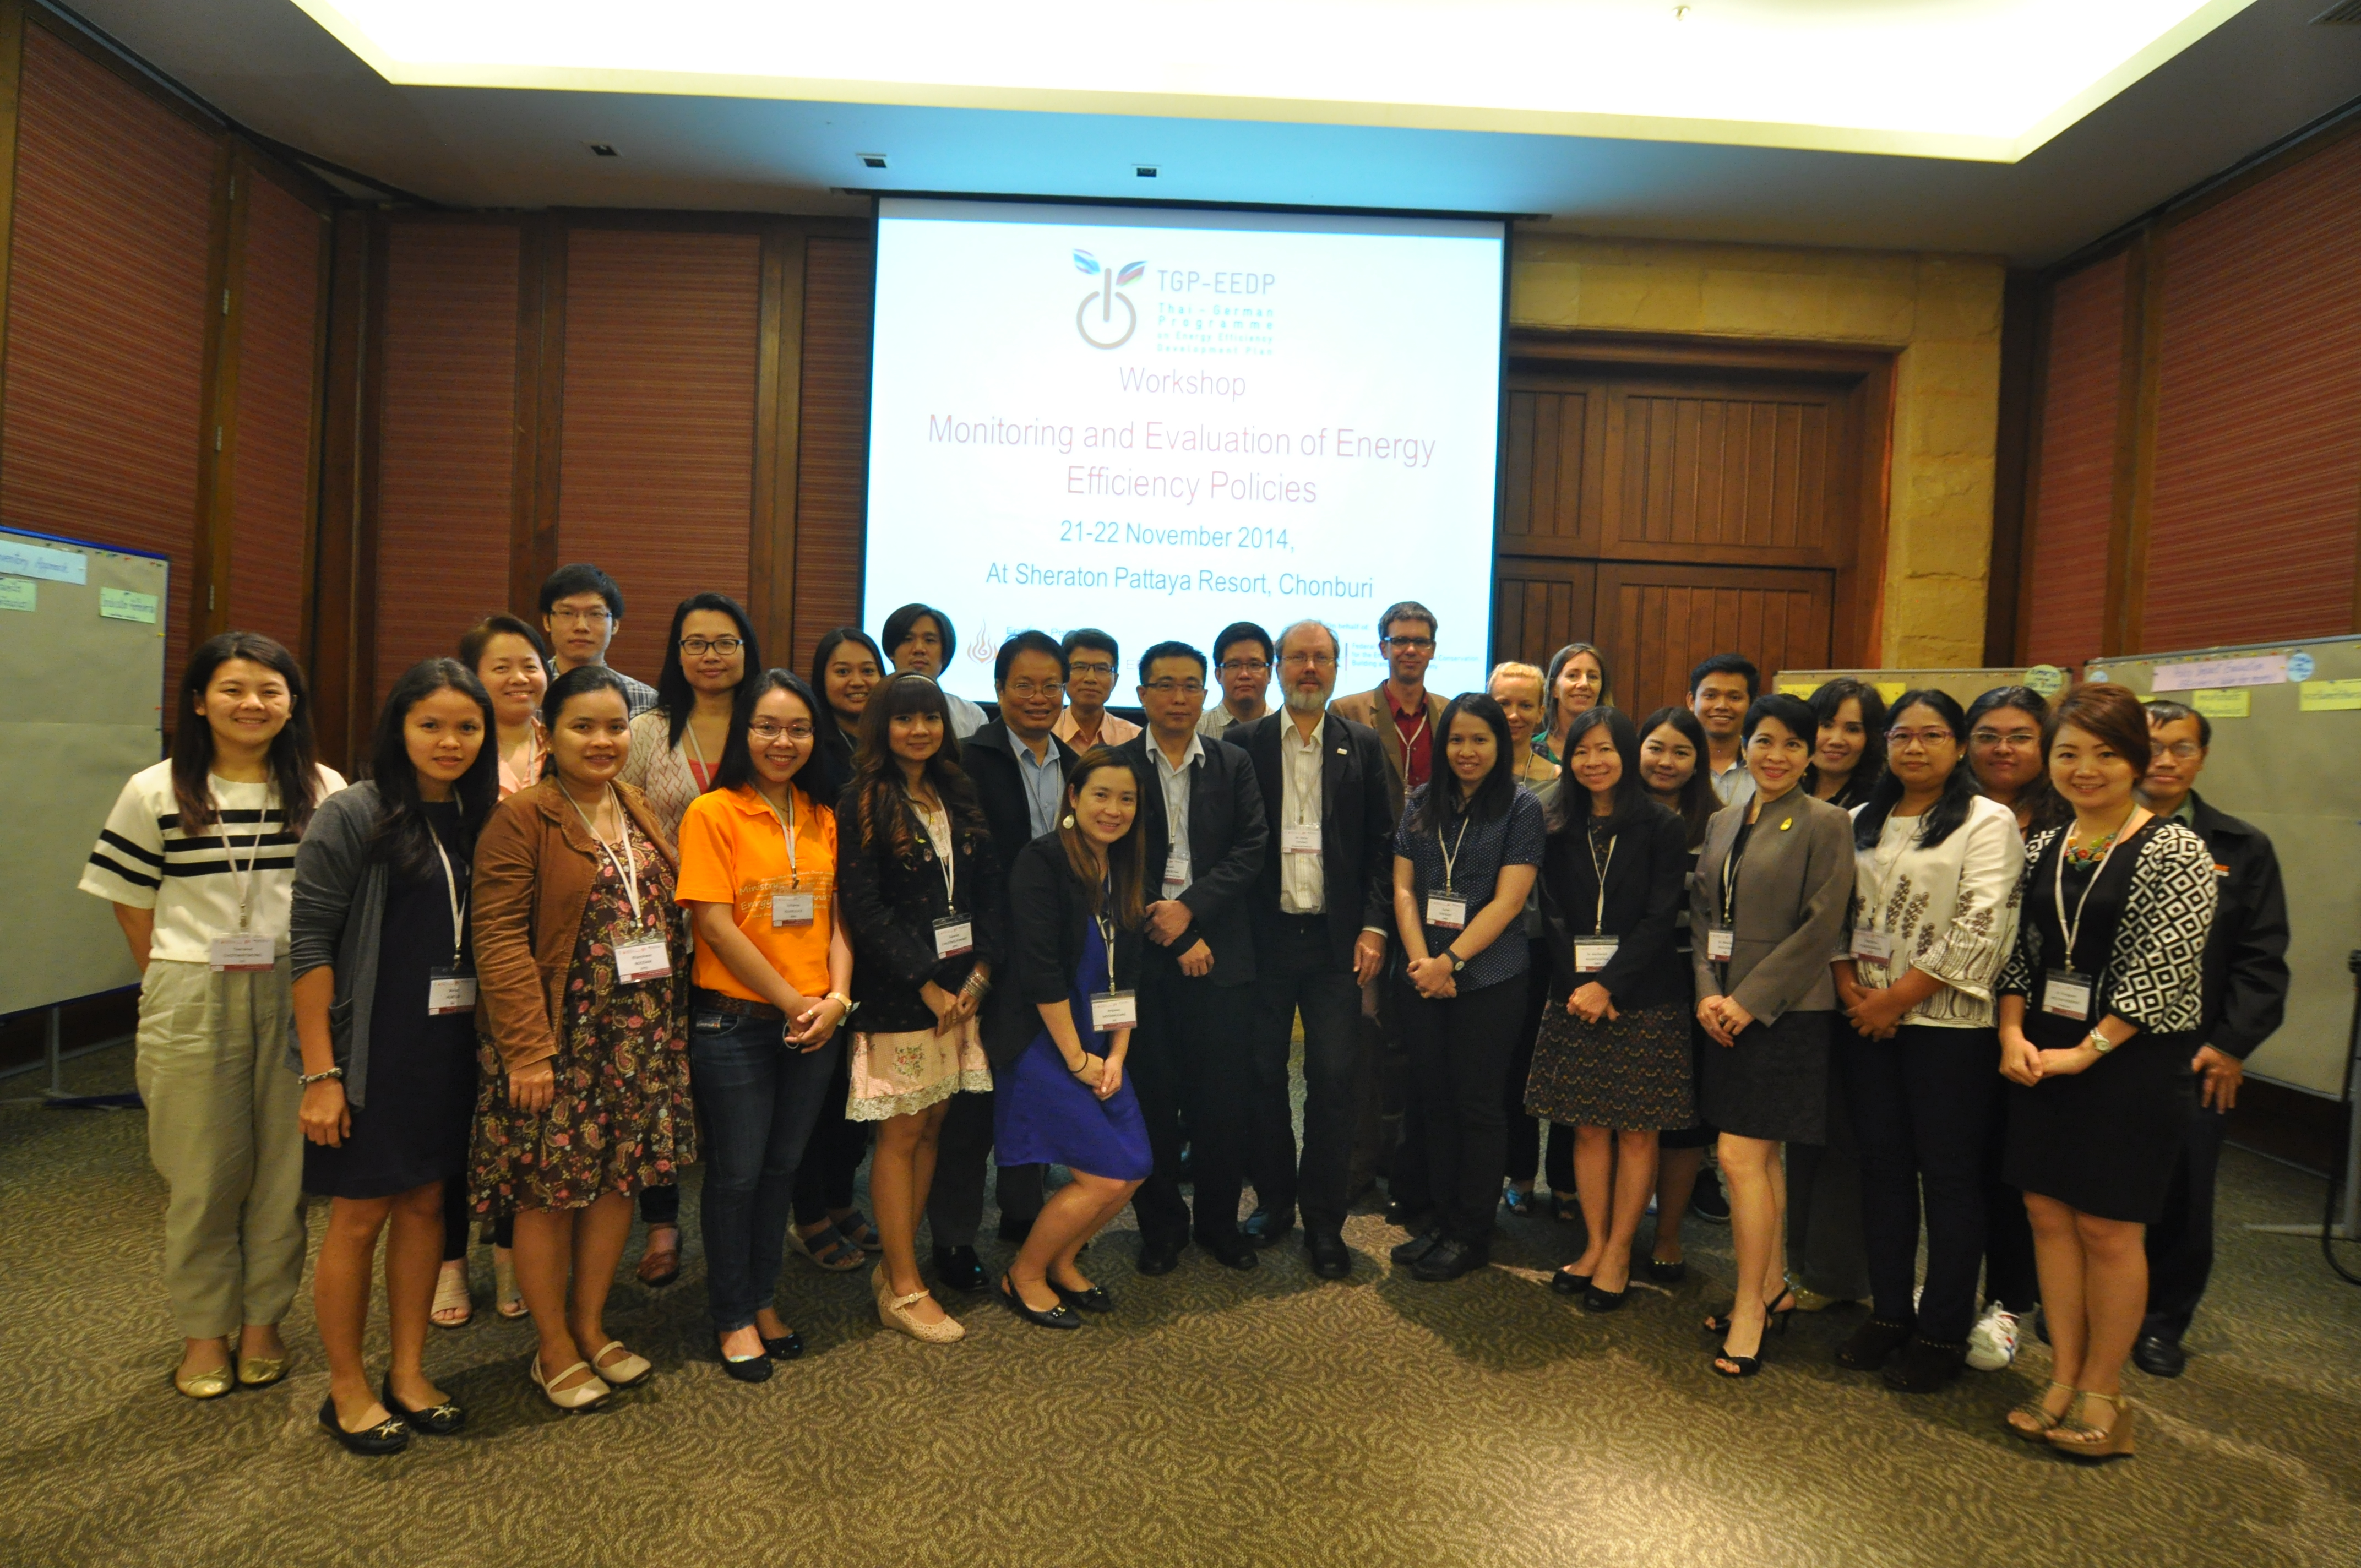 Workshop on Monitoring and Evaluation of Energy Efficiency Policies